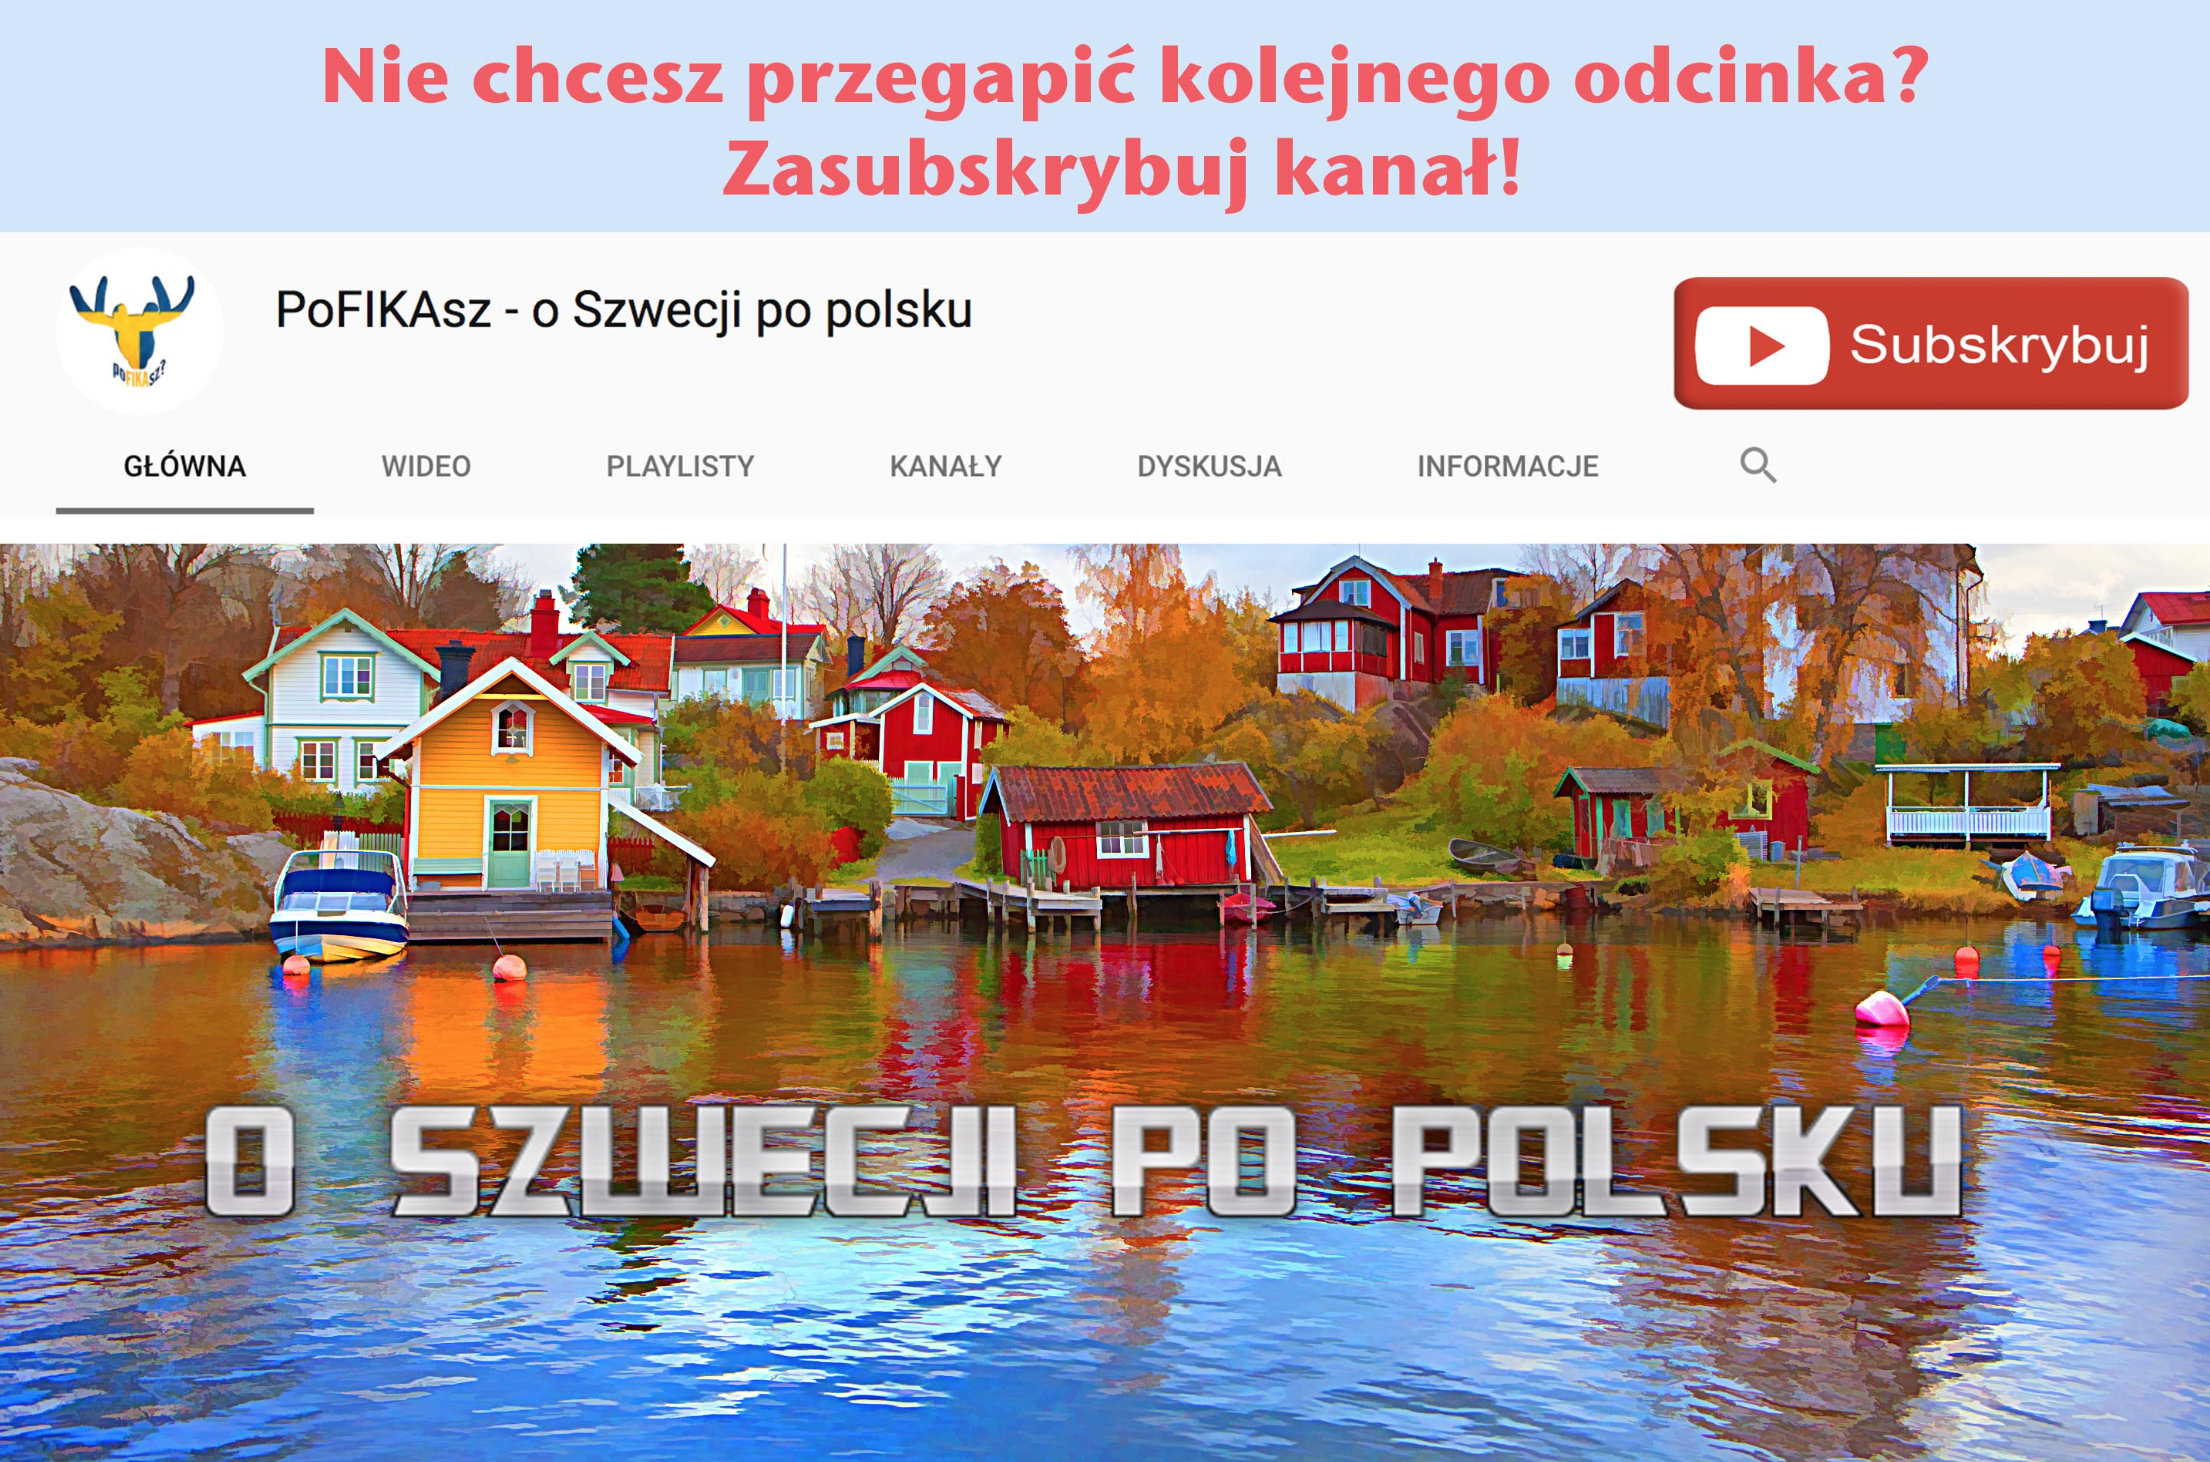 YouTube Pofikasz